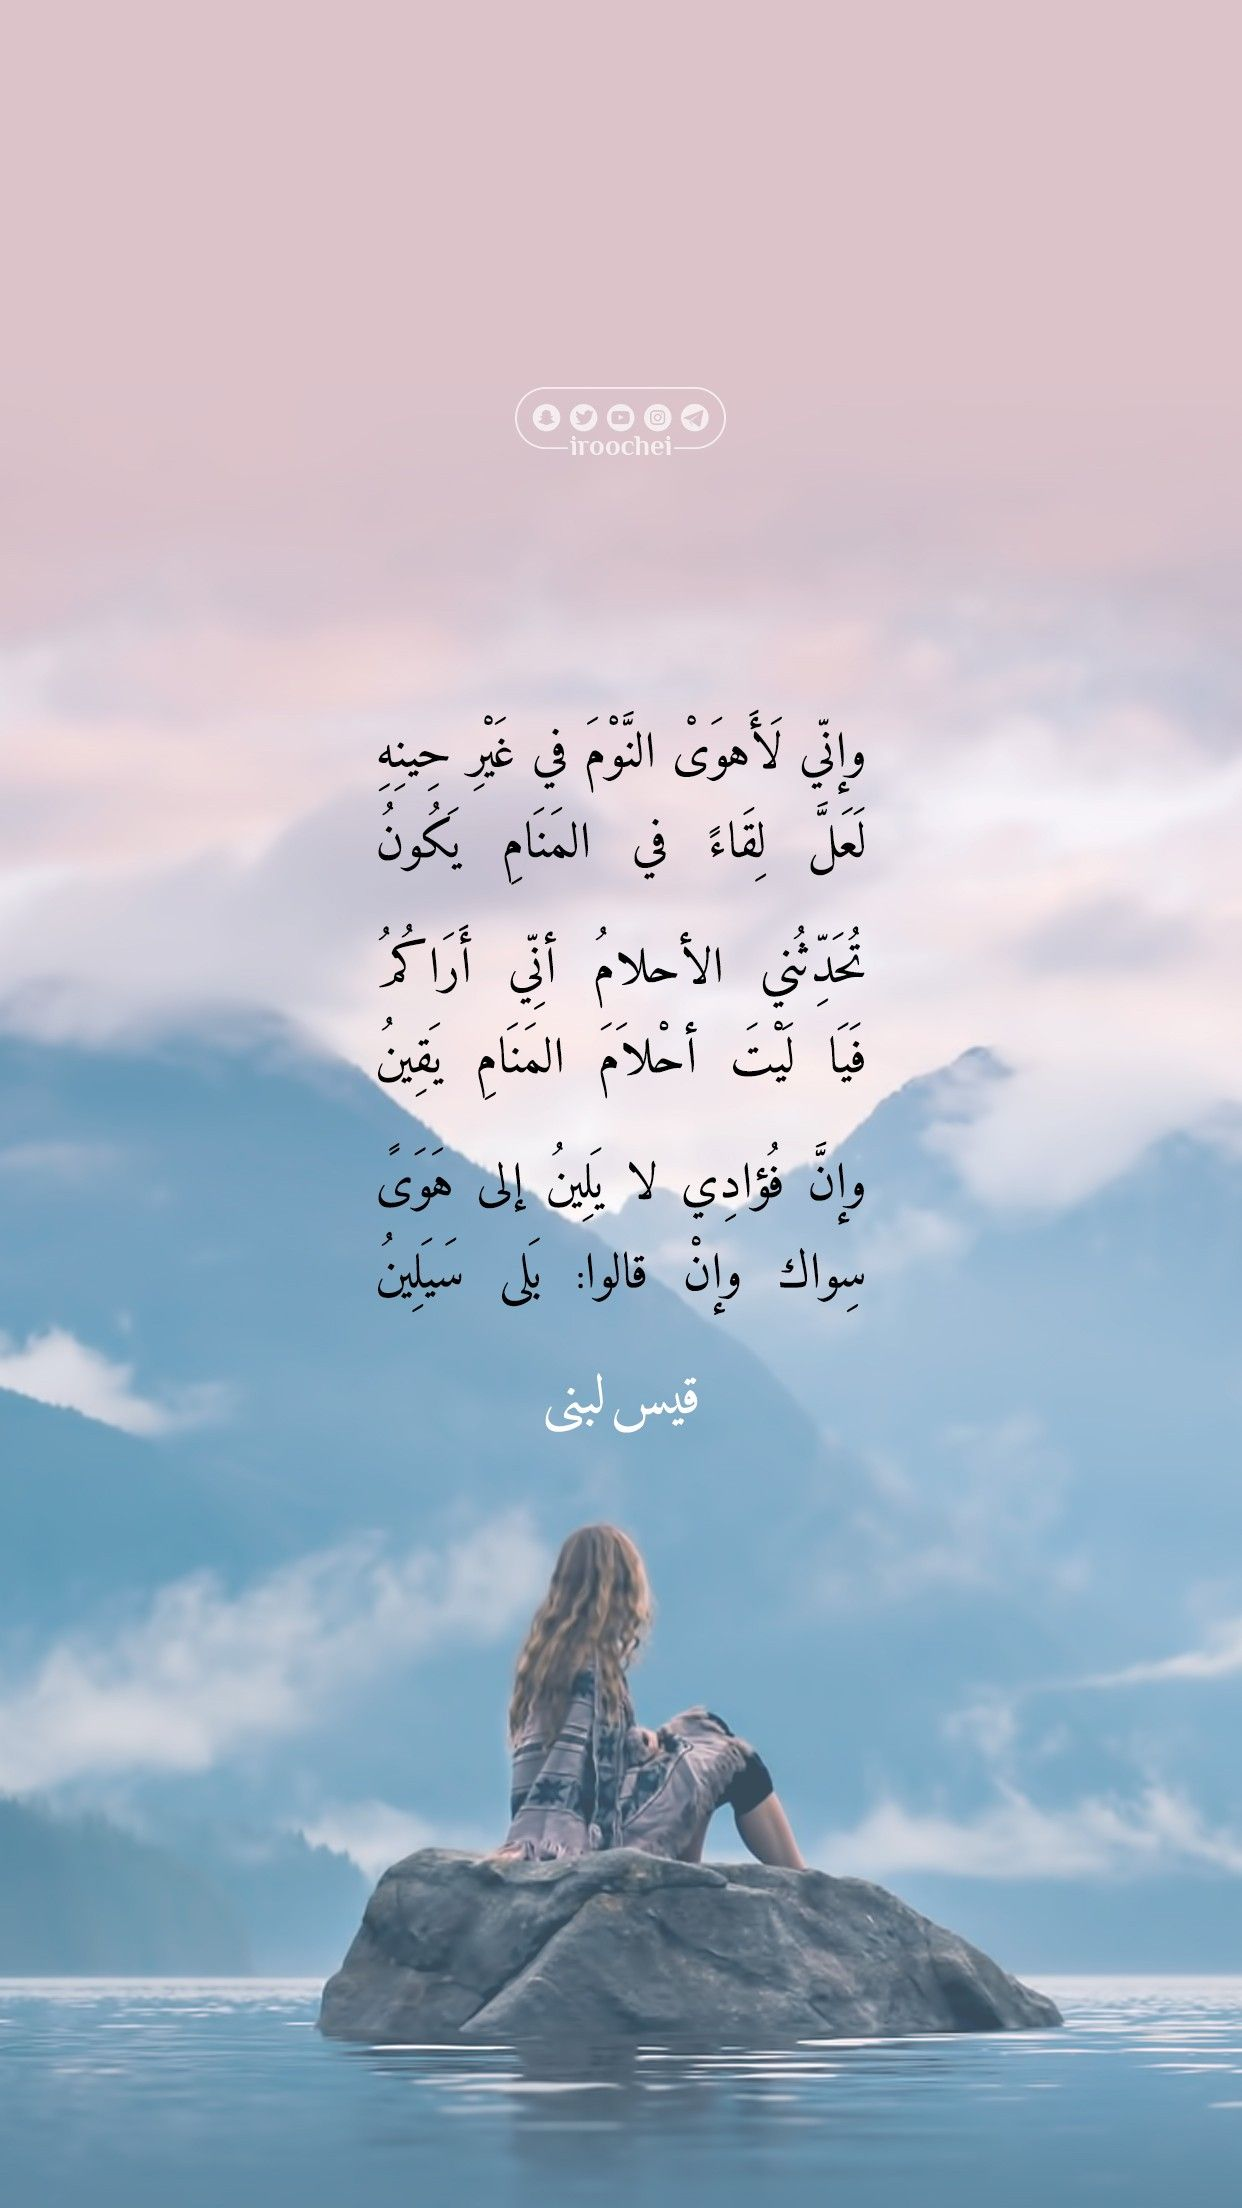 Pin By Amjad Ragab On Best Wallpapers Calligraphy Quotes Love Beautiful Arabic Words Weird Words